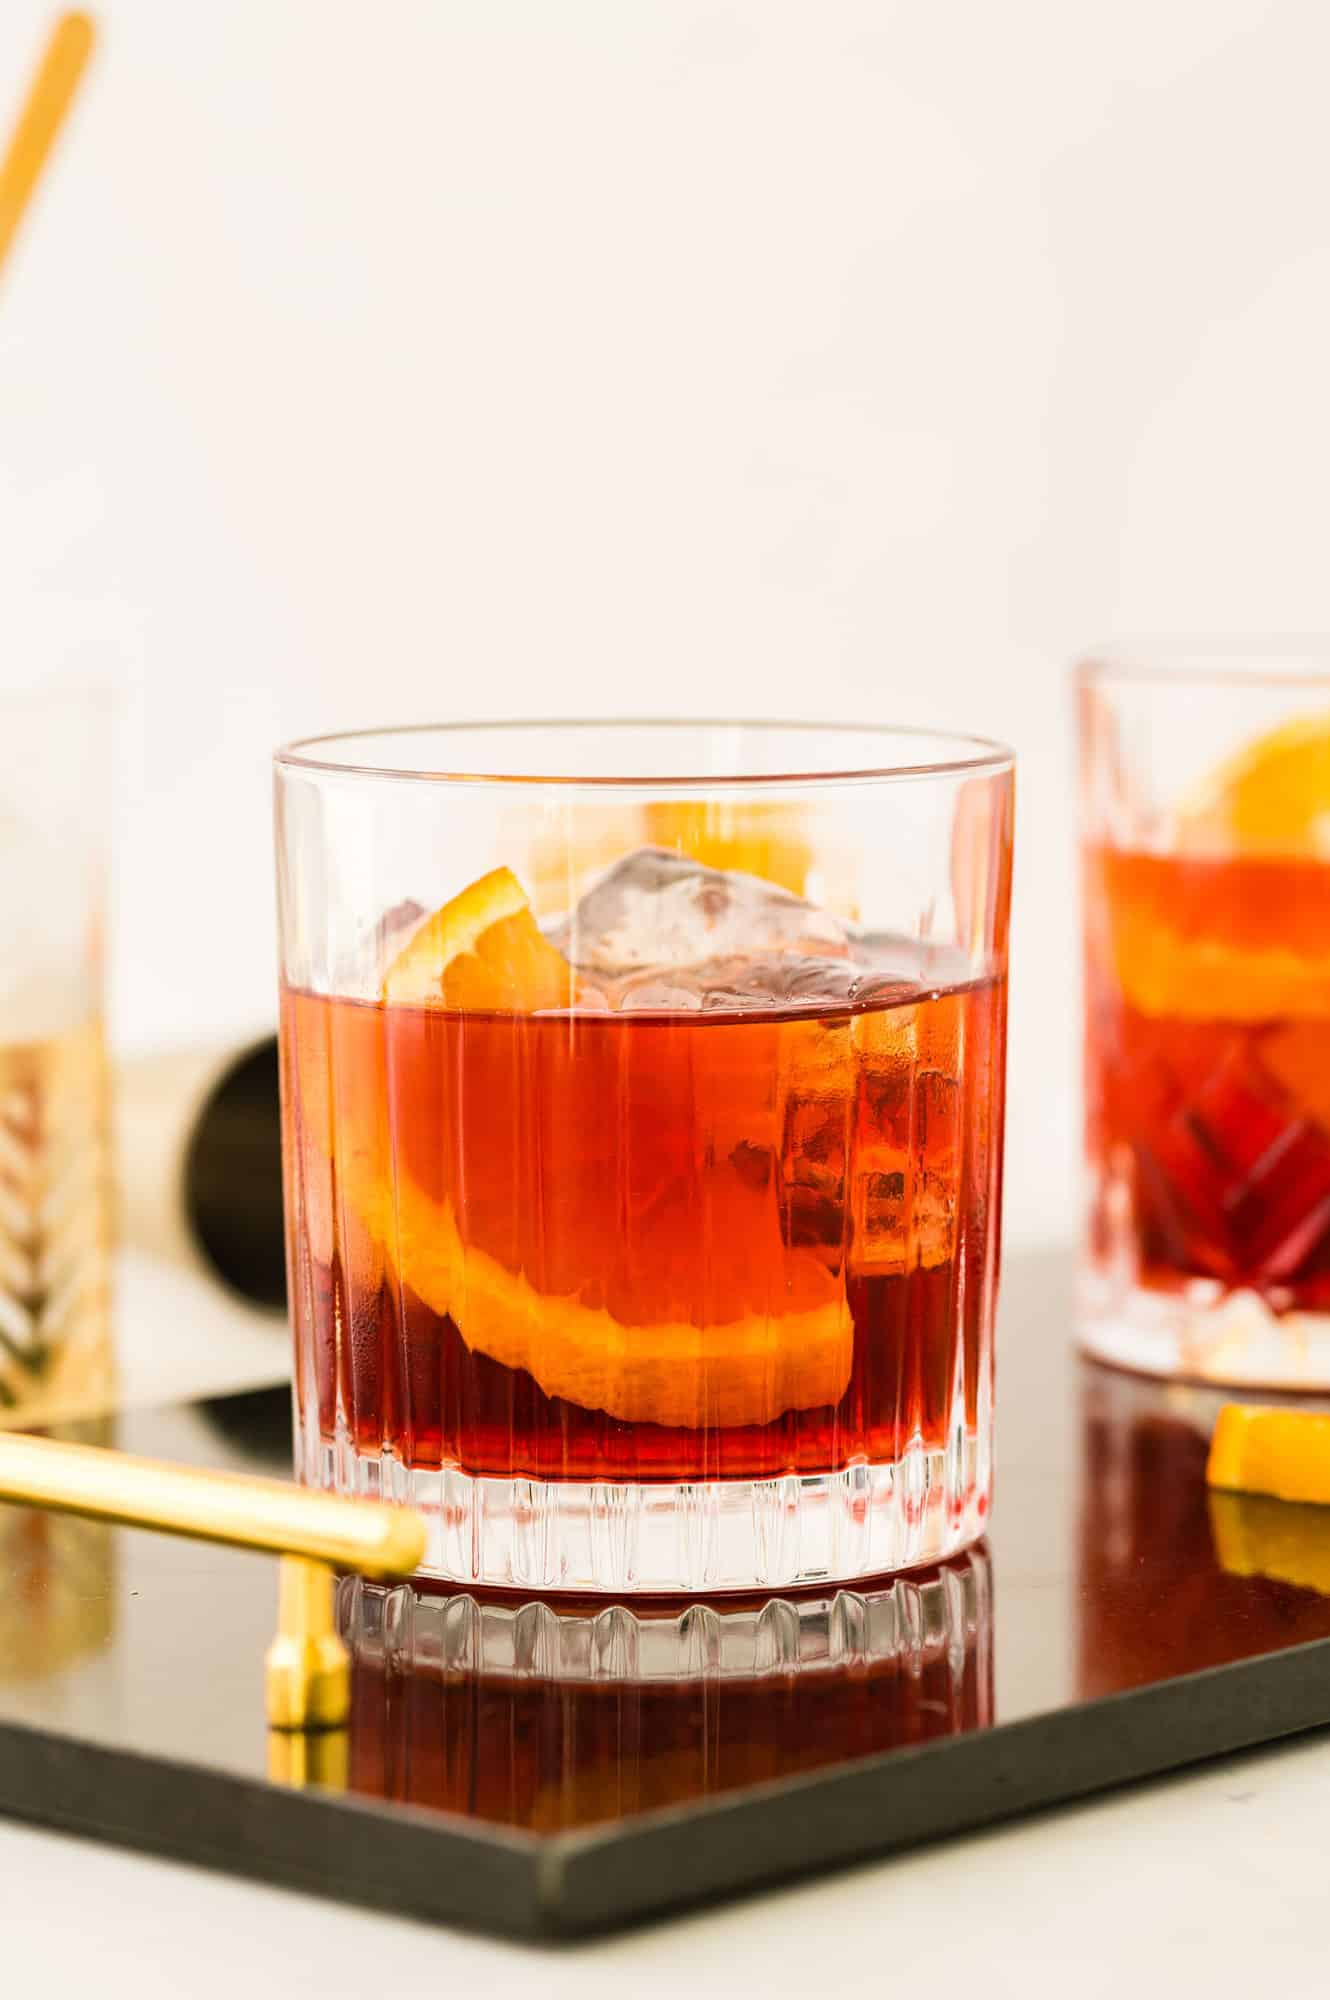 Dark red beverage in a short glass, with ice and an orange slice.